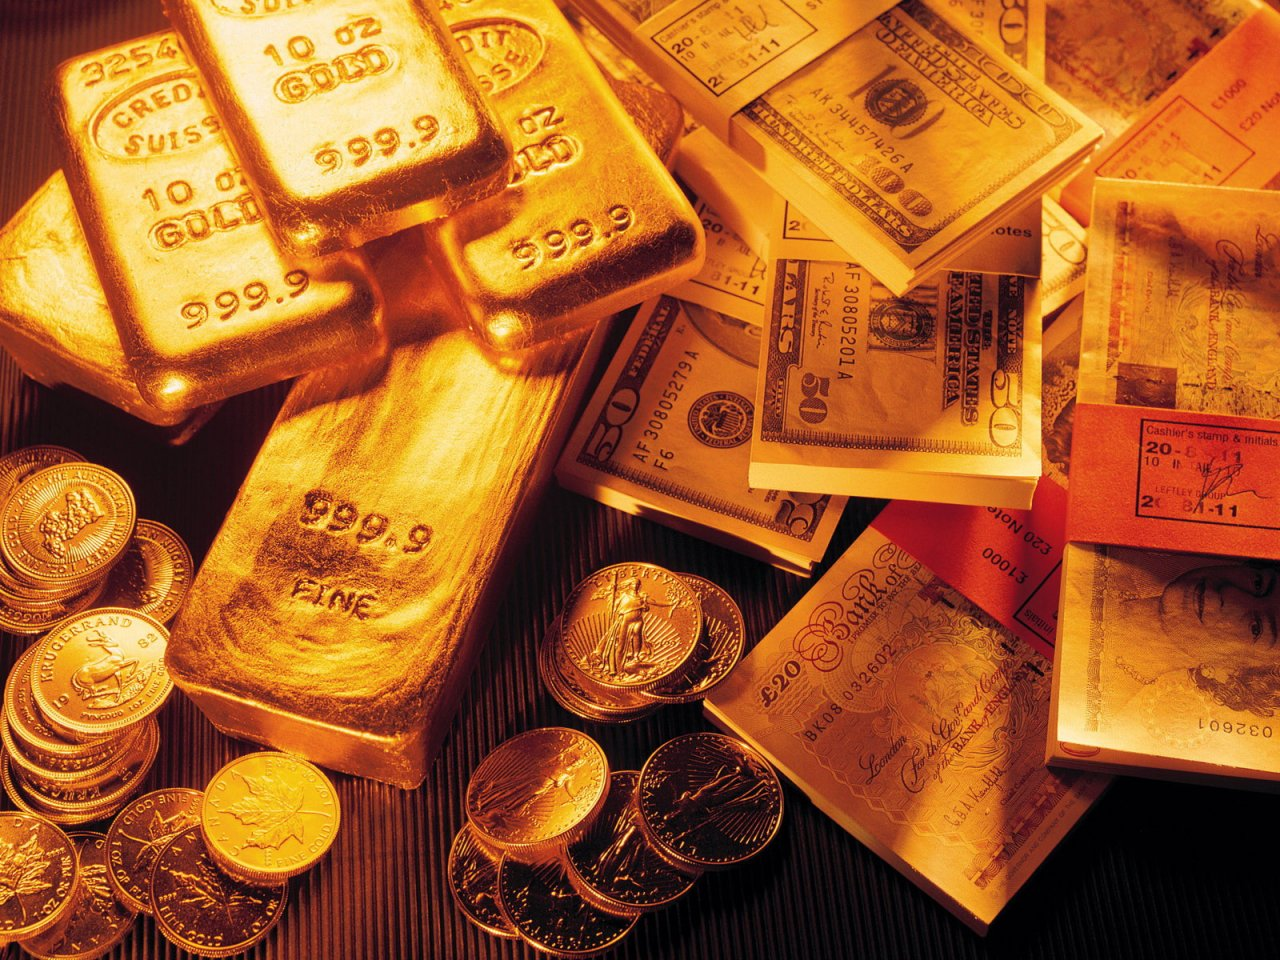 IMF Gold Sales – Where 'Transparency' means 'Secrecy'